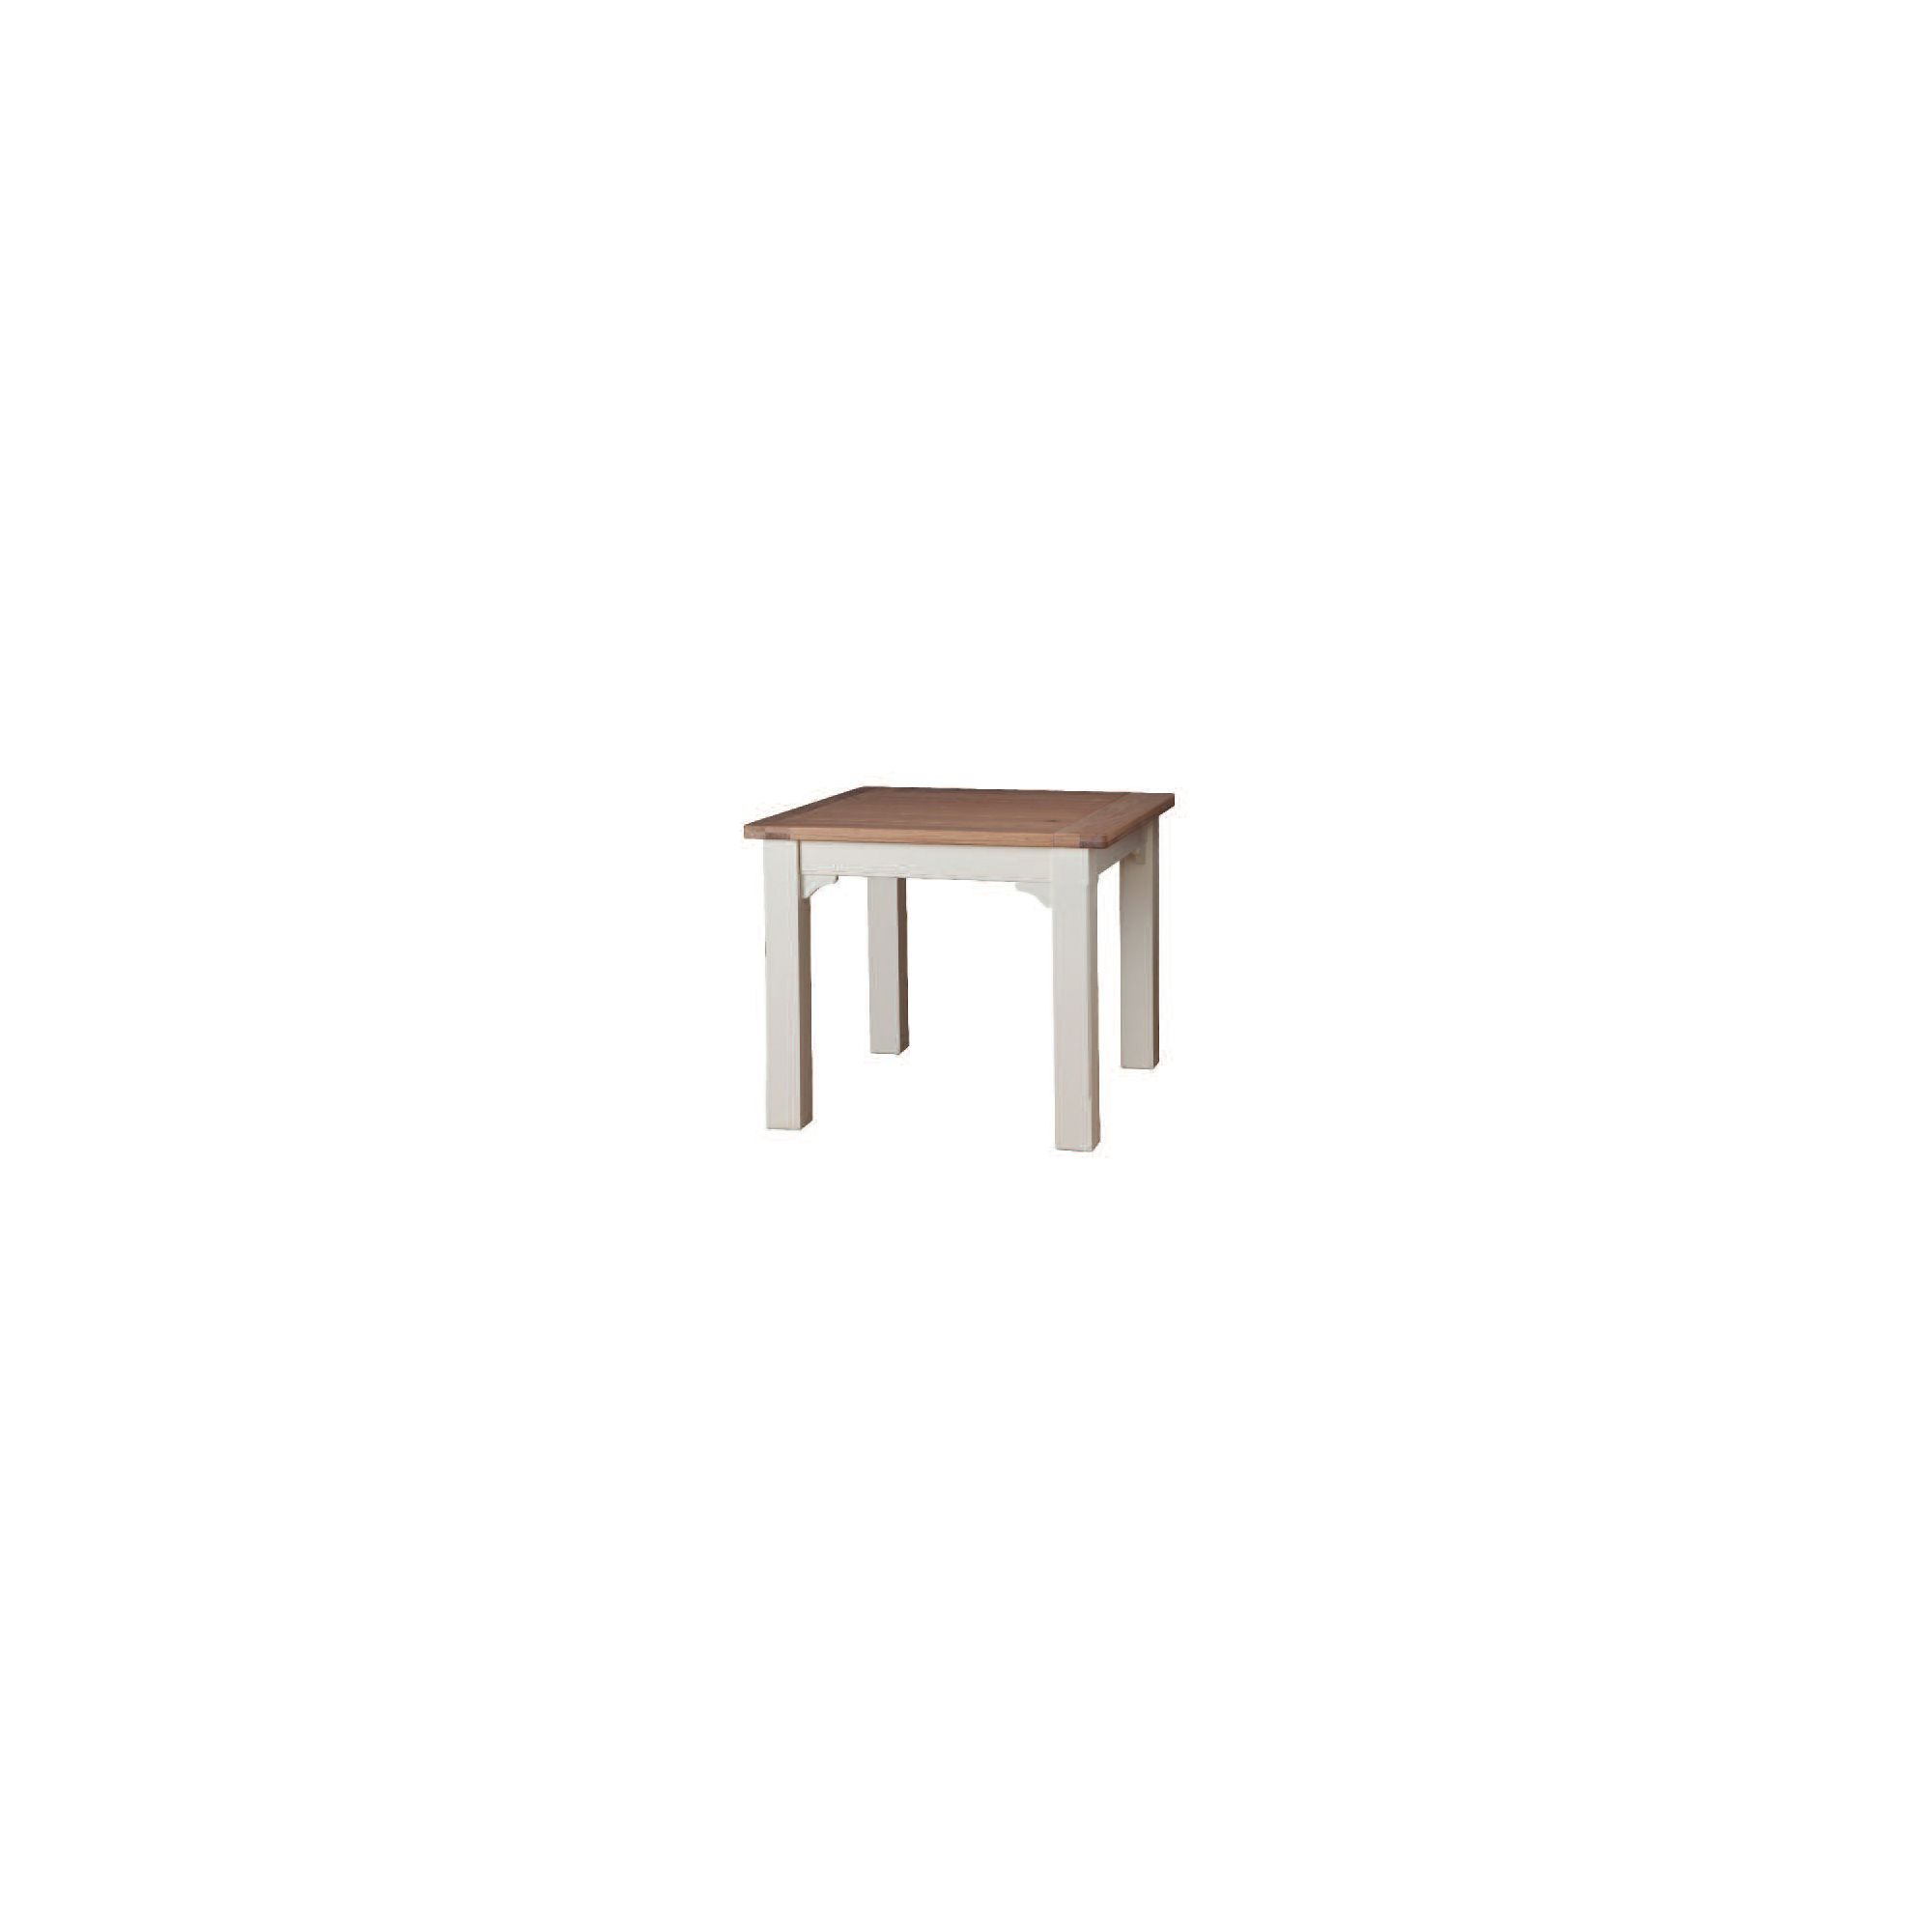 Wilkinson Furniture Buttermere Solid Oak Dining Table in Ivory